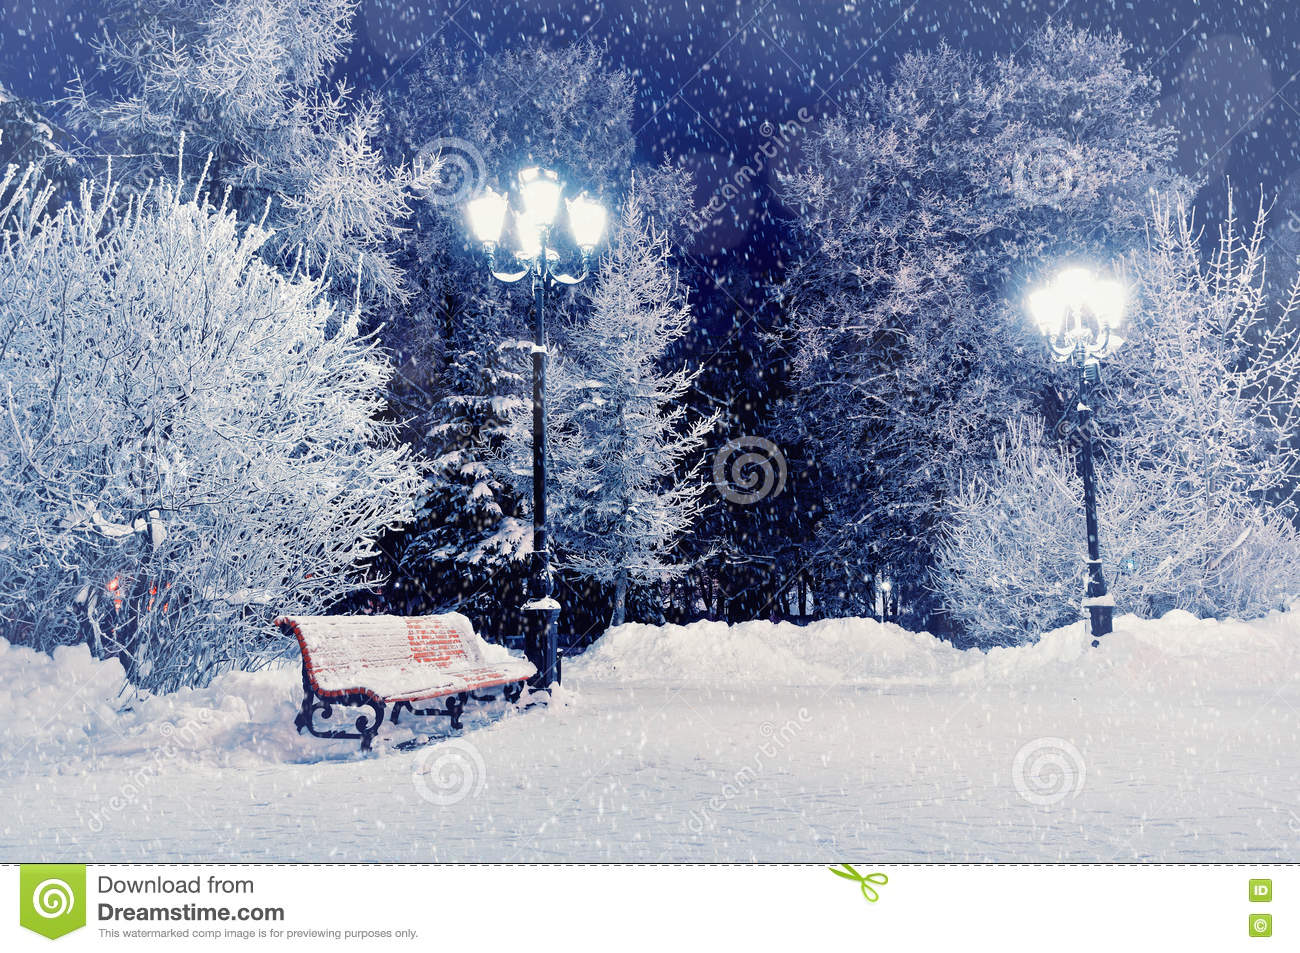 Winter night landscape scene of snow covered bench among snowy winter trees and lights